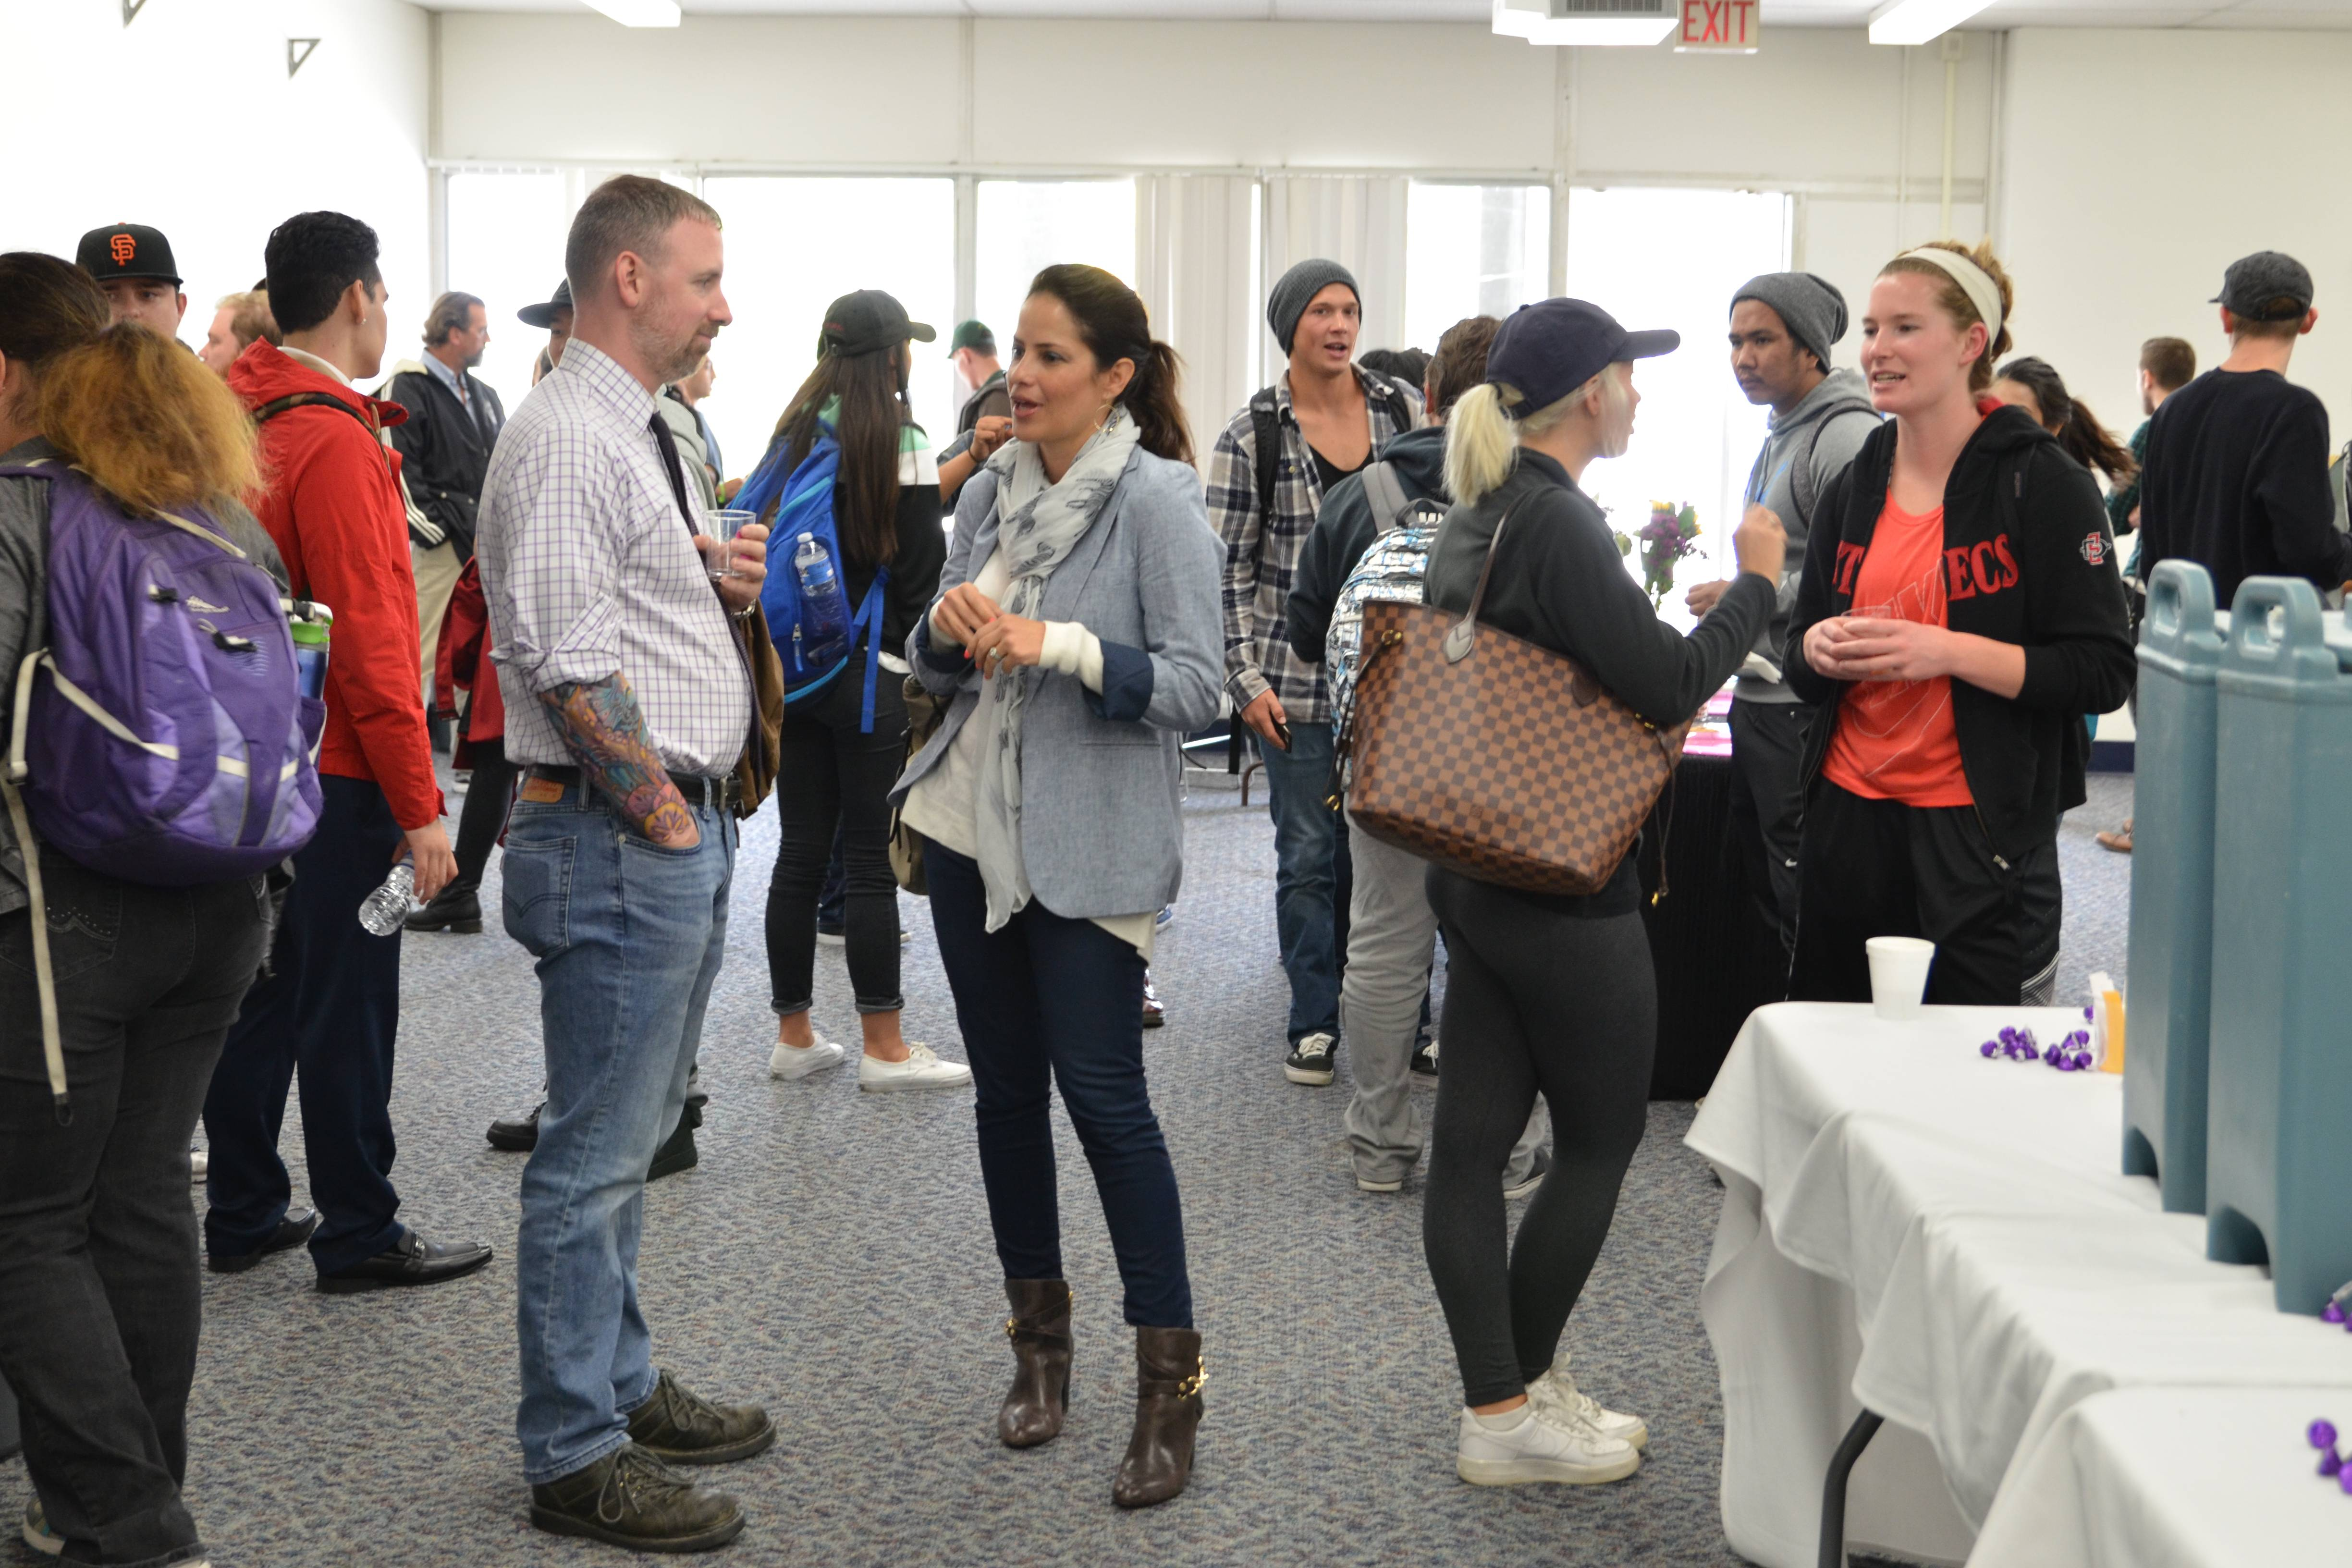 San Diego Mesa College's Communication Studies Department invites students, faculty and staff to mingle during this semester's Common Grounds event at MC 211 A/B on Thursday, Nov. 3 from 12:30 to 1:30 p.m.